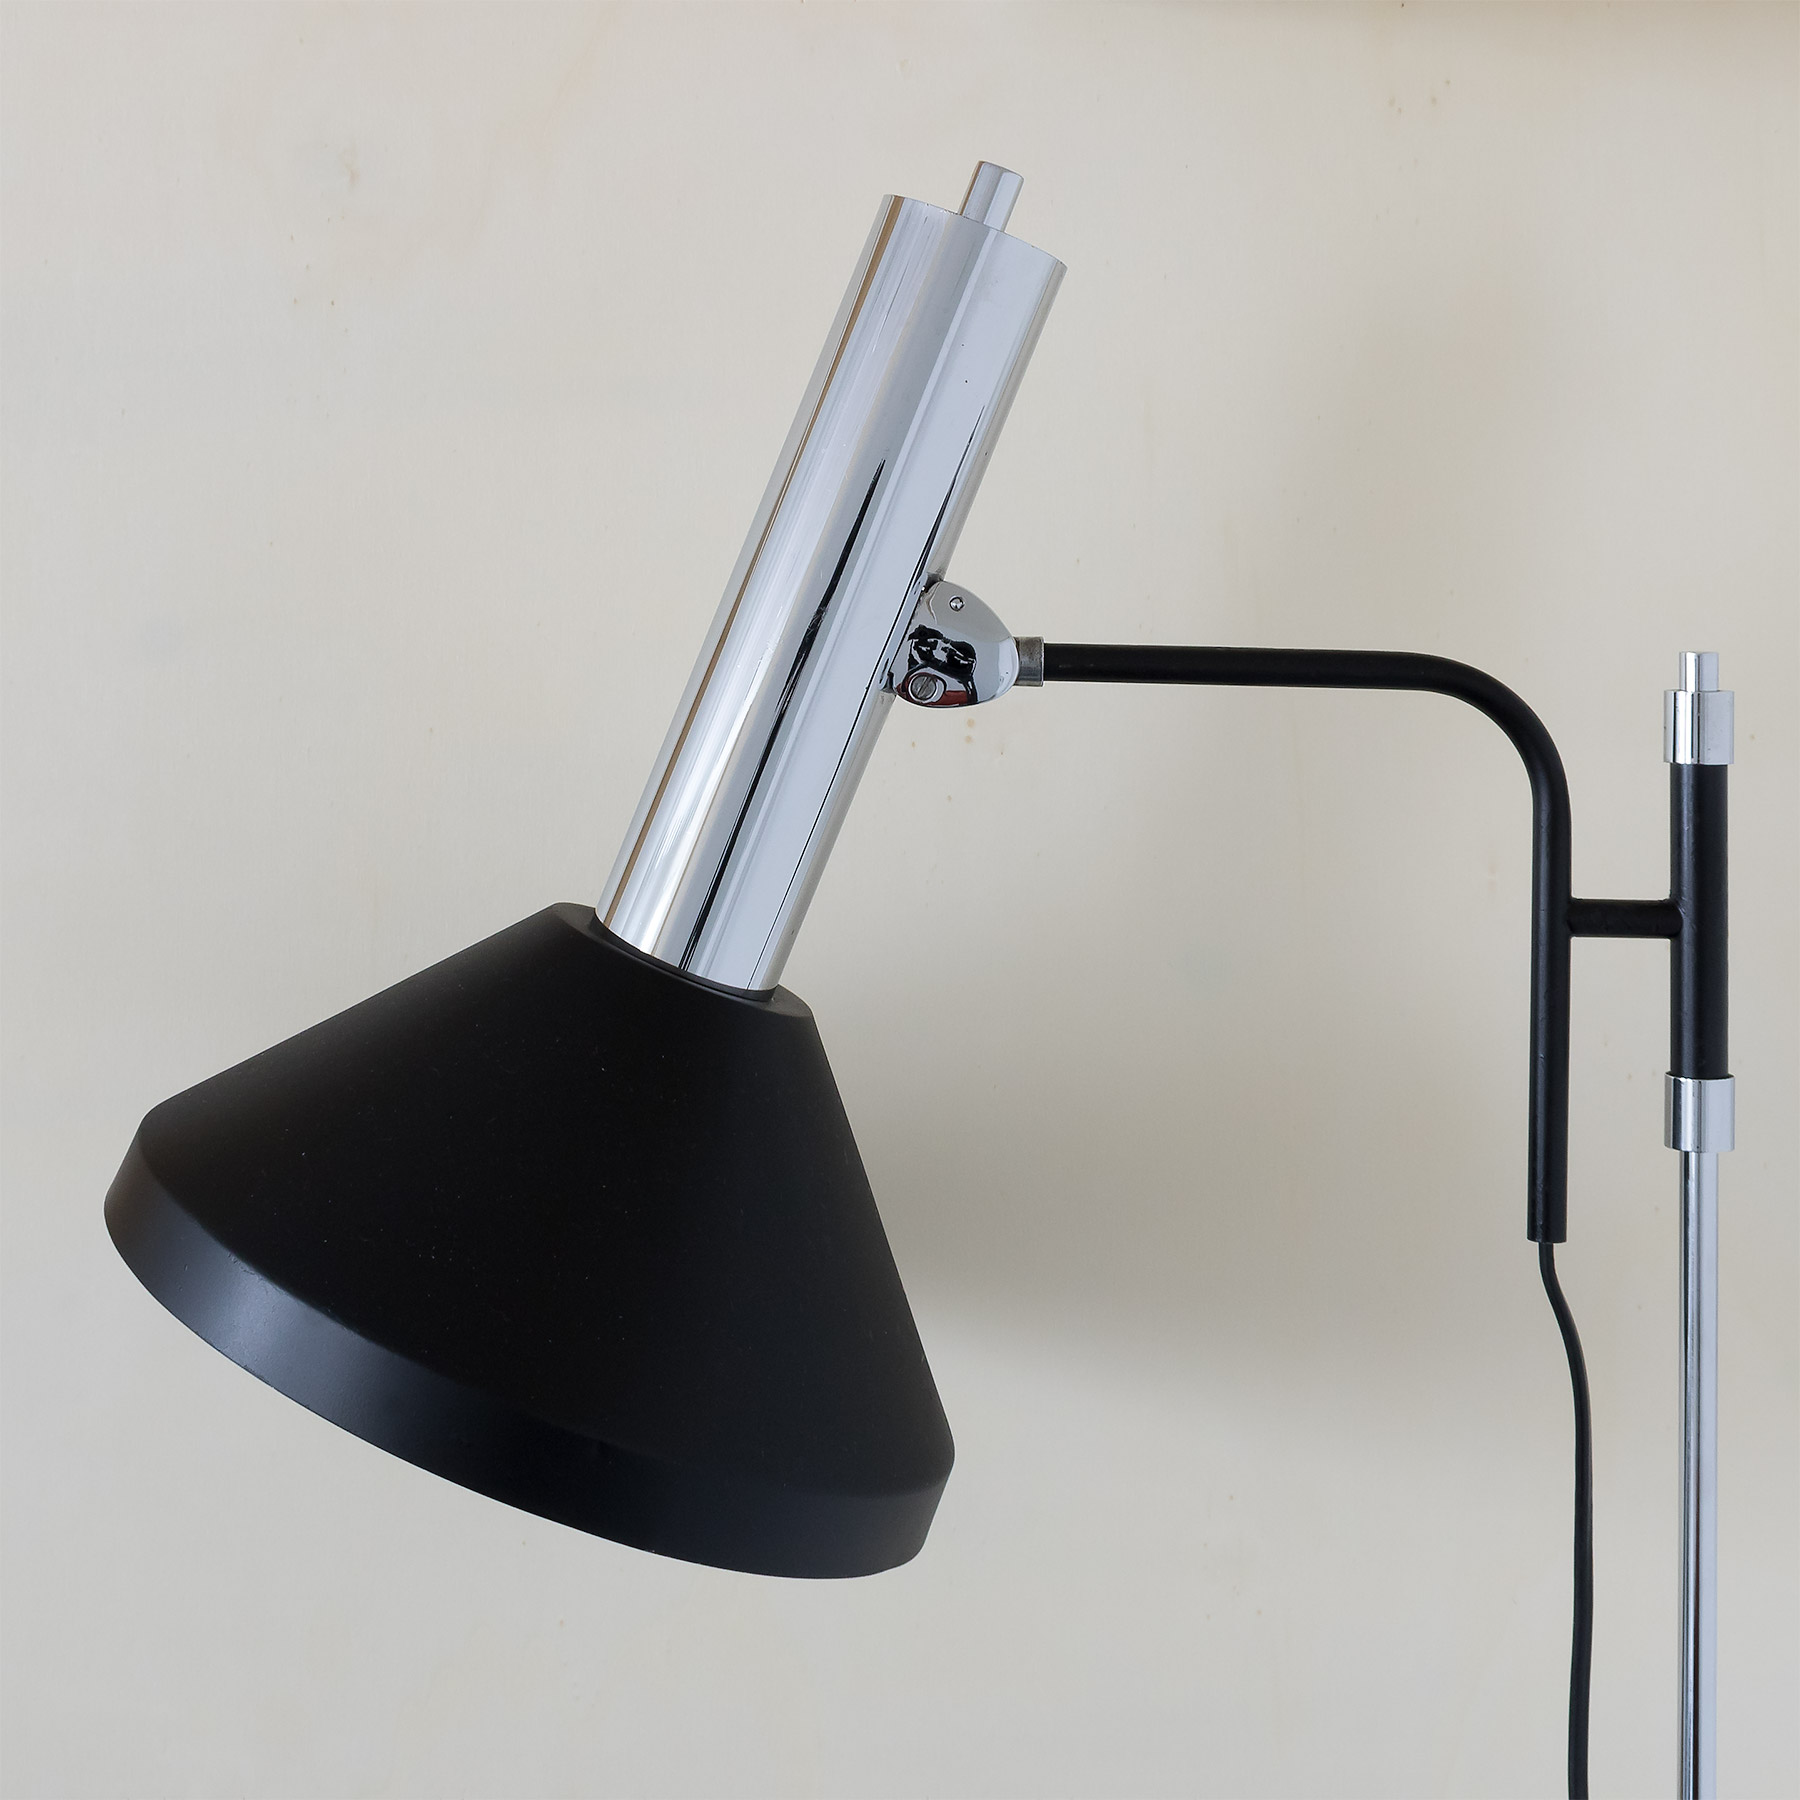 1970's black and chrome, industrial style metal floor lamp